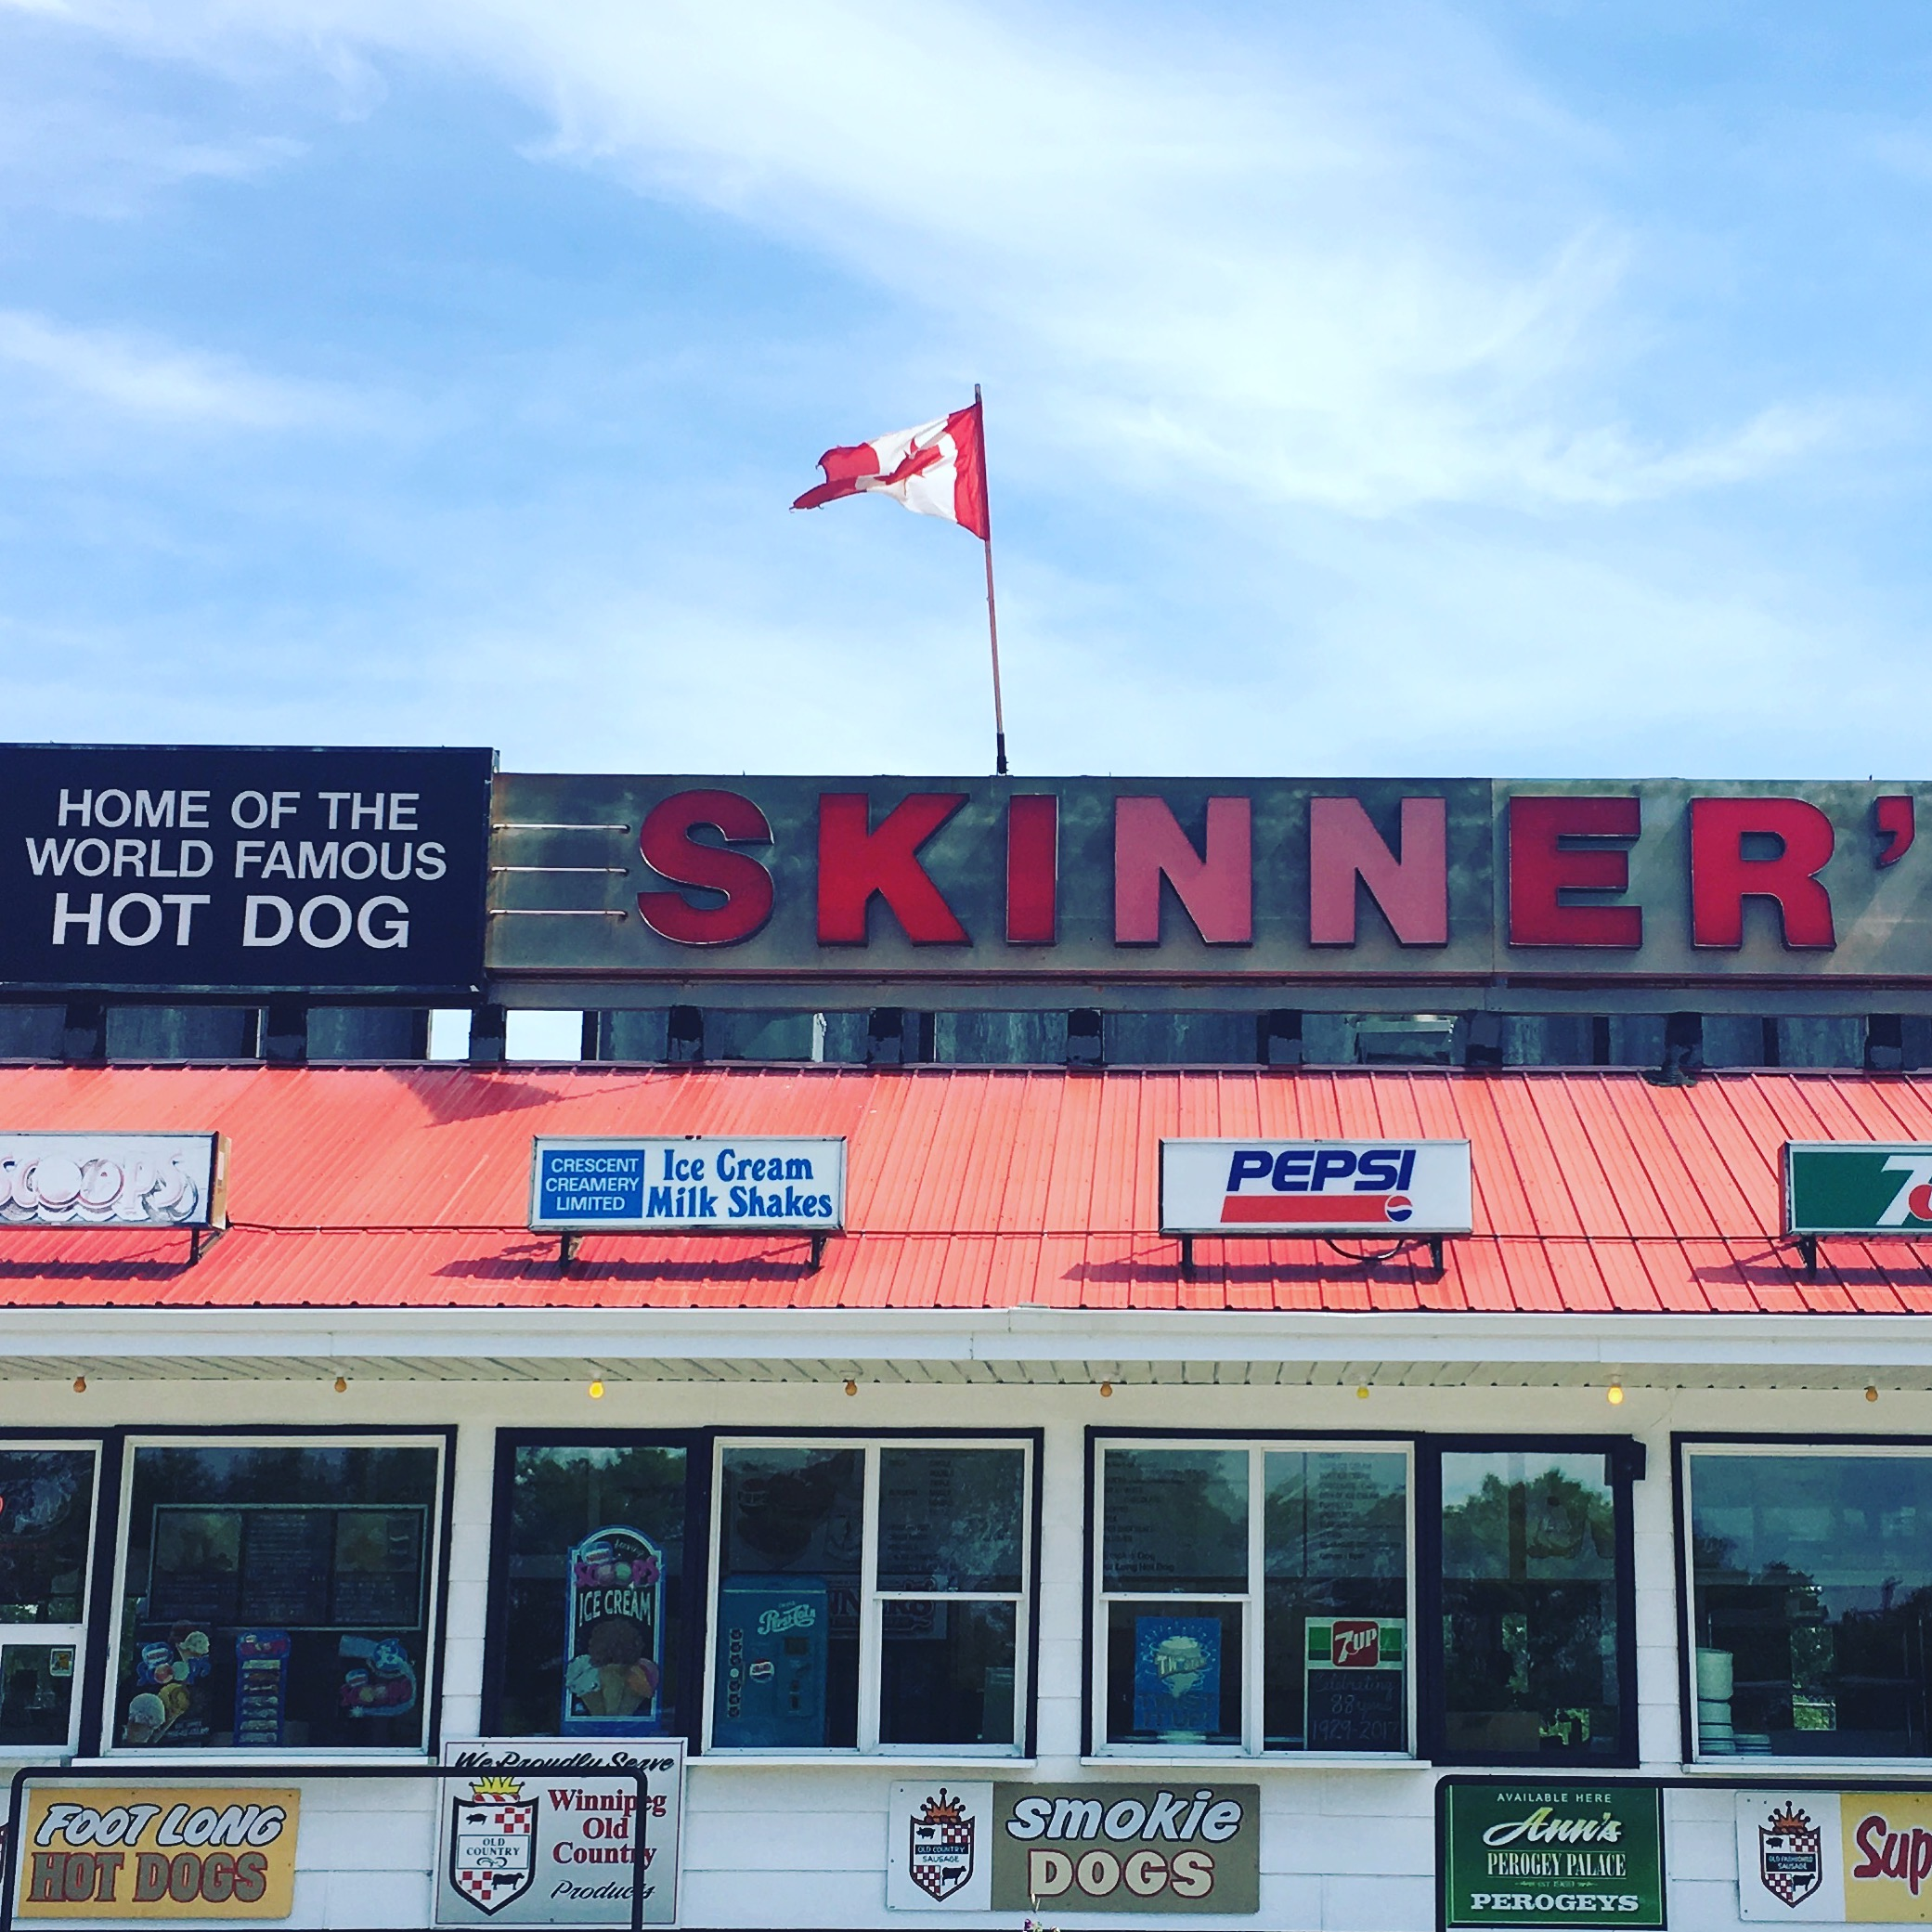 Skinner's is a Manitoba institution and welcomes visitors at the gateway to the Interlake. I can attest to the fact that their hot dogs are delicious but the ice cream is also worth the drive as well.